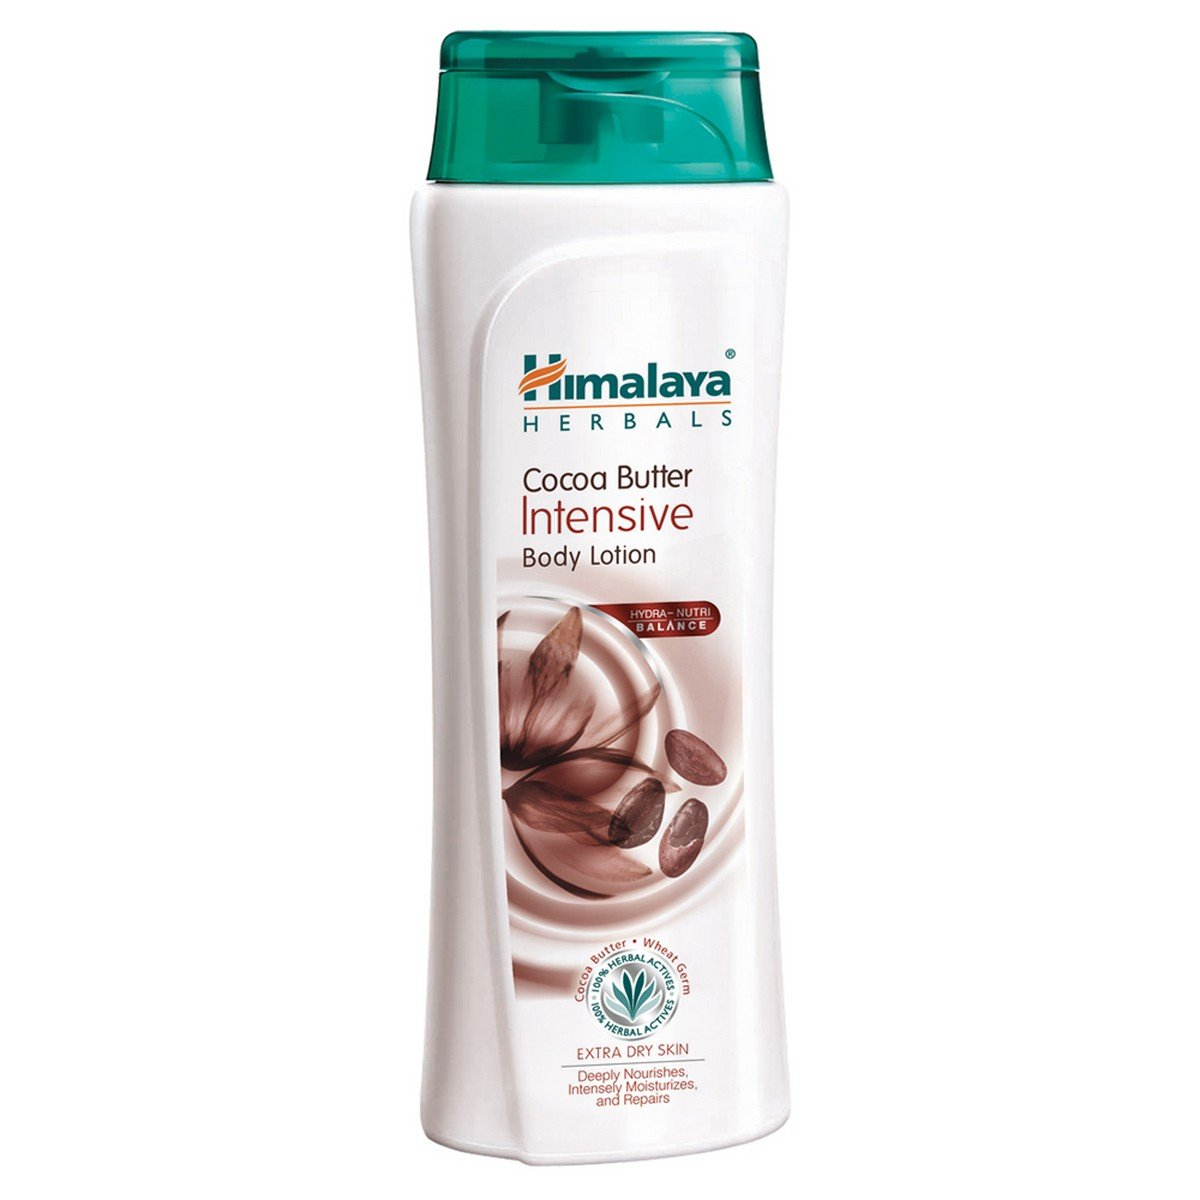 Himalaya Herbals Cocoa Butter Intensive Body Lotion, 400ml product image